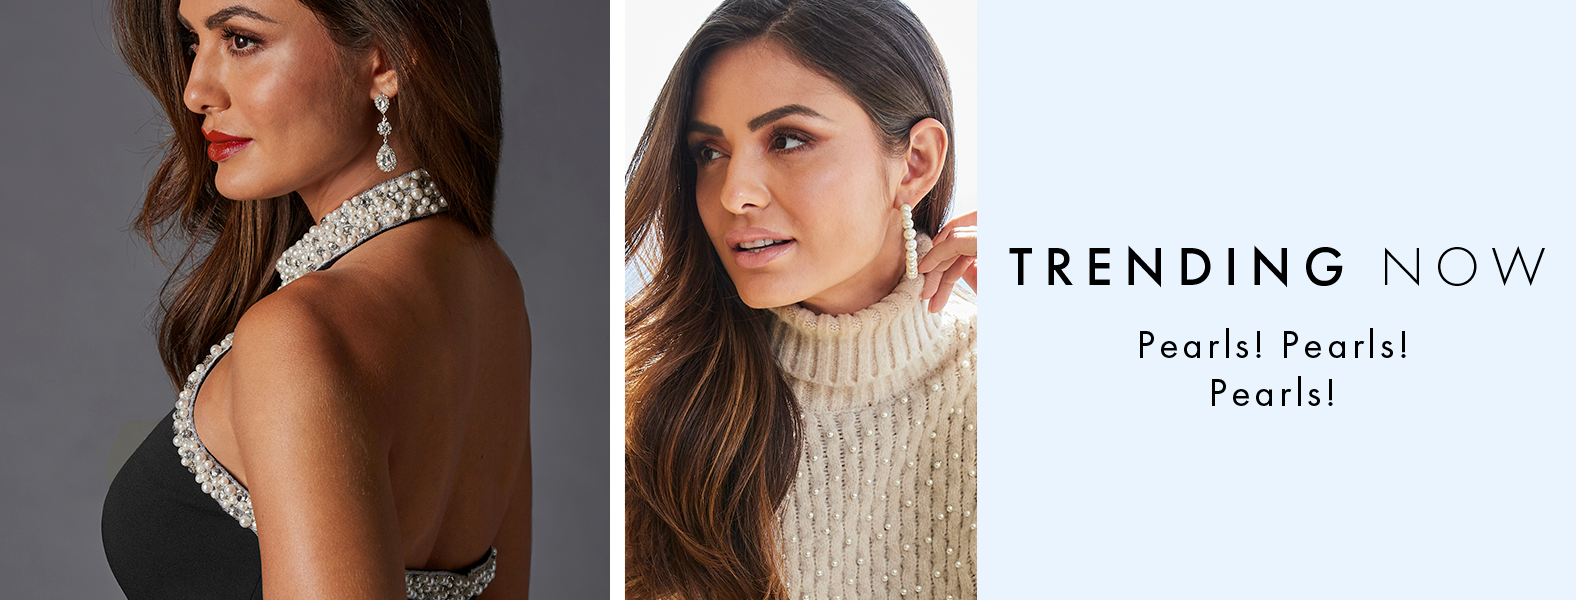 left model wearing a pearl embellished black jumpsuit and silver drop earrings. right model wearing a beige pearl embellished turtleneck sweater and pearl embellished hoop earrings. text: trending now. pearls! pearls! pearls!